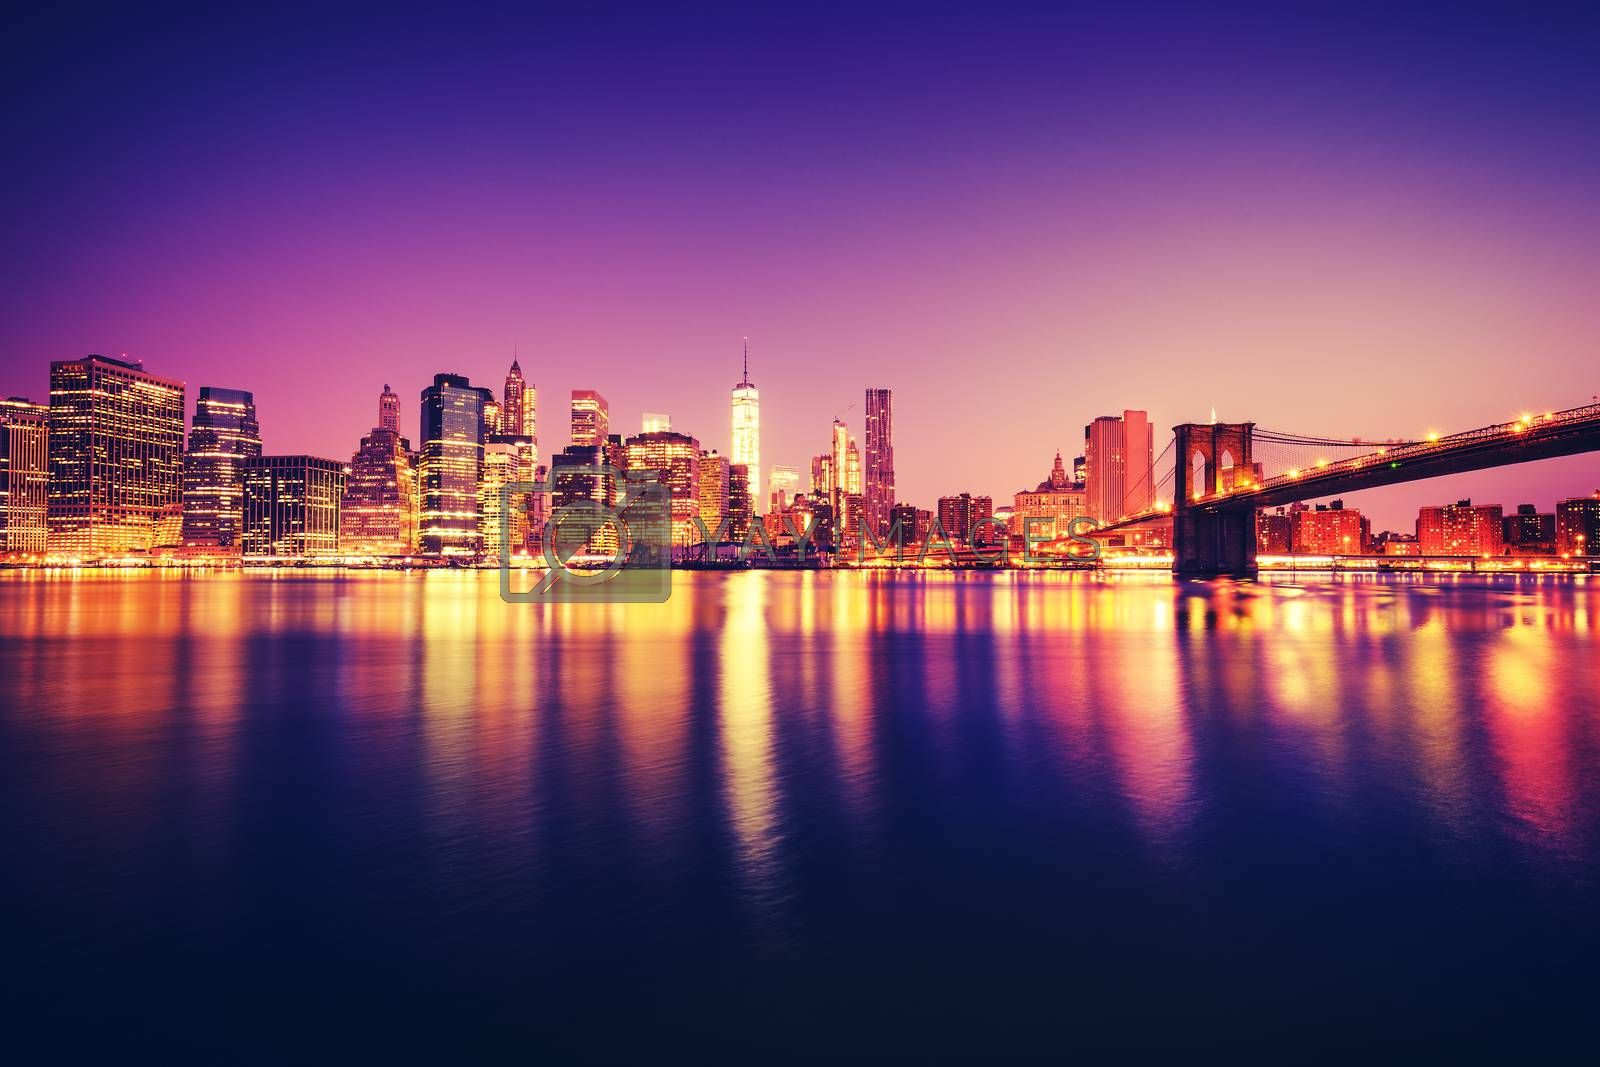 View of Manhattan at sunset, New York City. Special photographic processing.